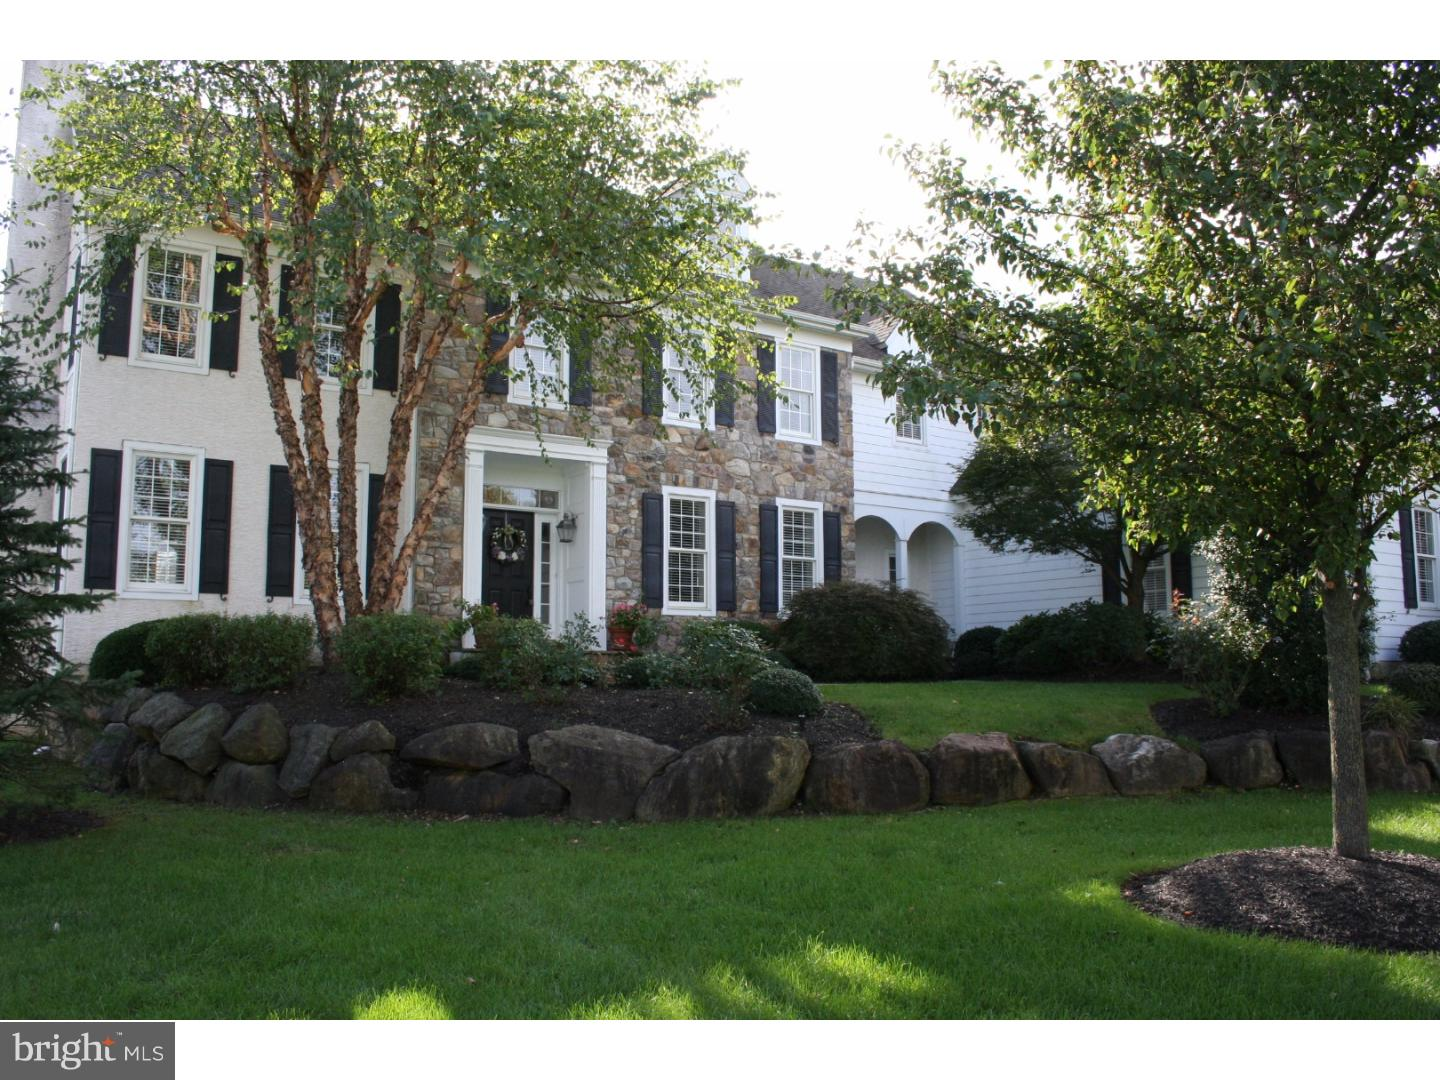 1036 BRICK HOUSE FARM LANE, Newtown Square, PA 19073